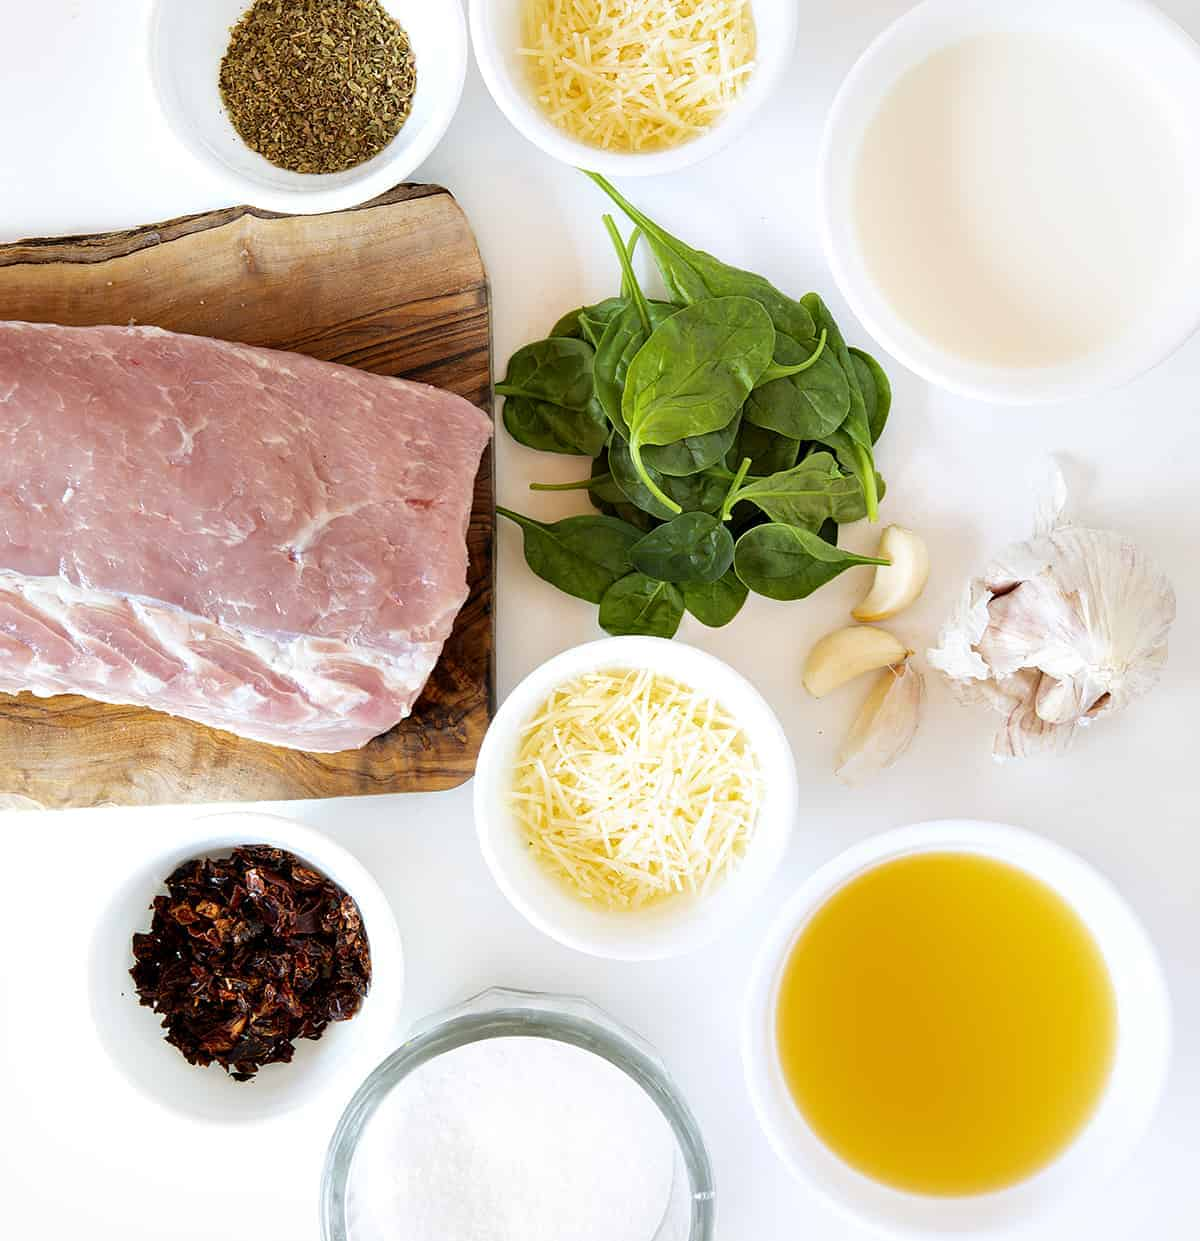 Ingredients for Pork Tenderloin with Parmesan and Roasted Garlic Cream Sauce